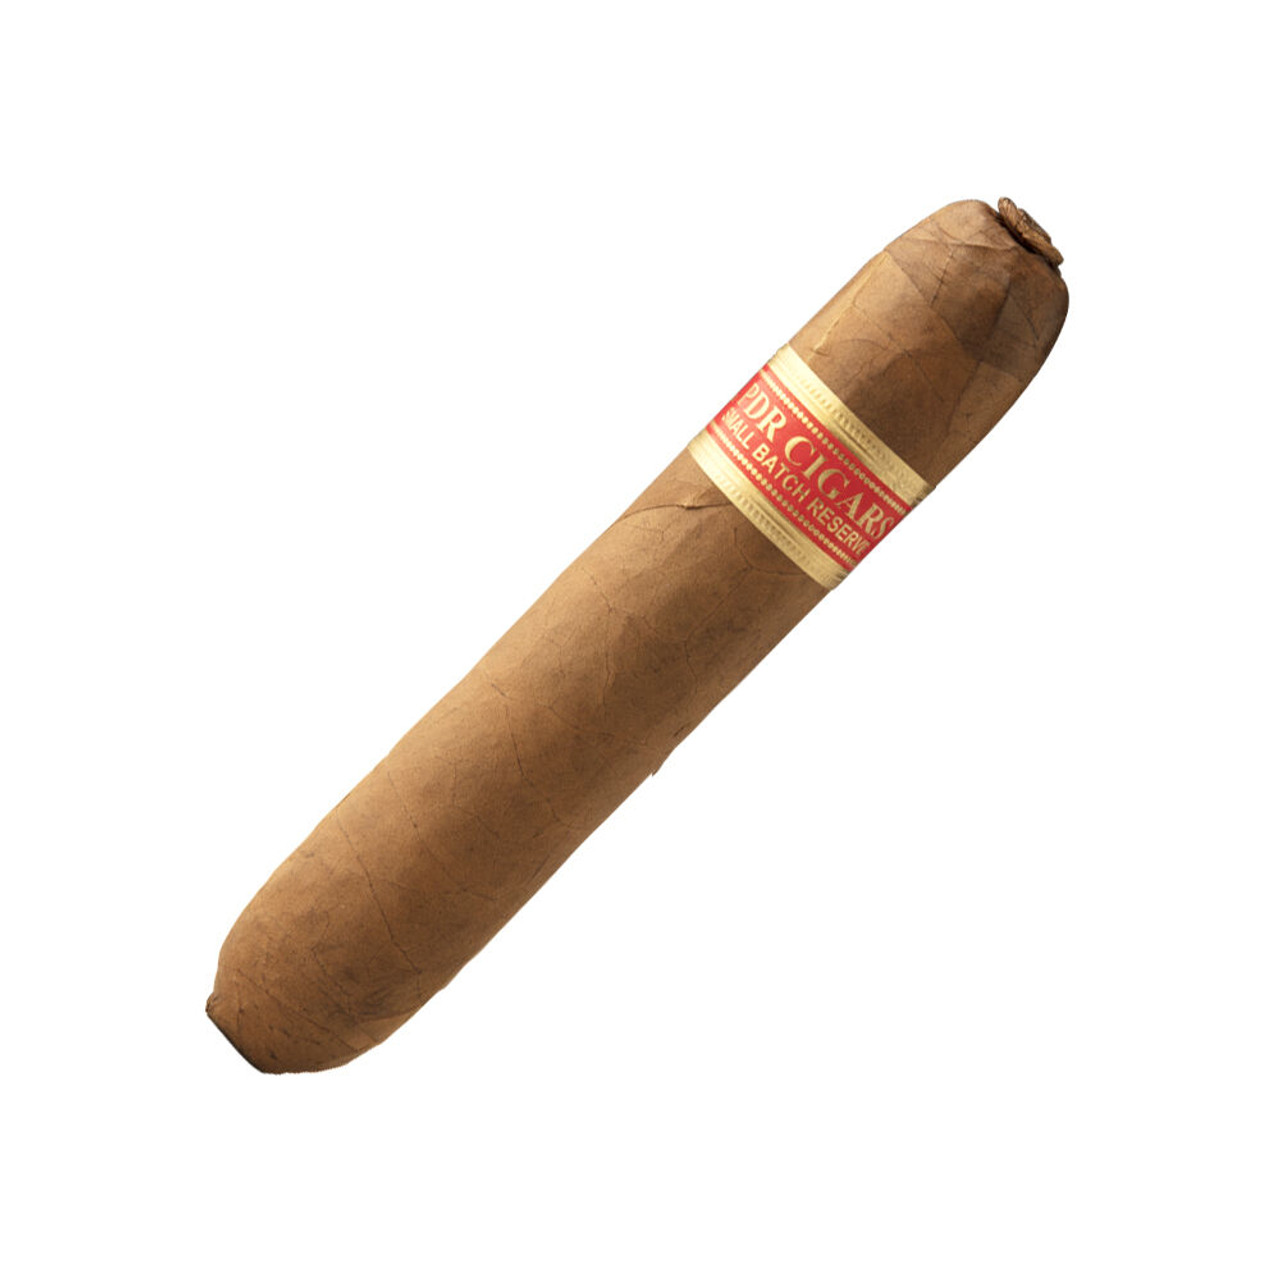 PDR Small Batch Reserve Wicked Pugs No. 2 Cigars - 5 x 50 (Box of 12)